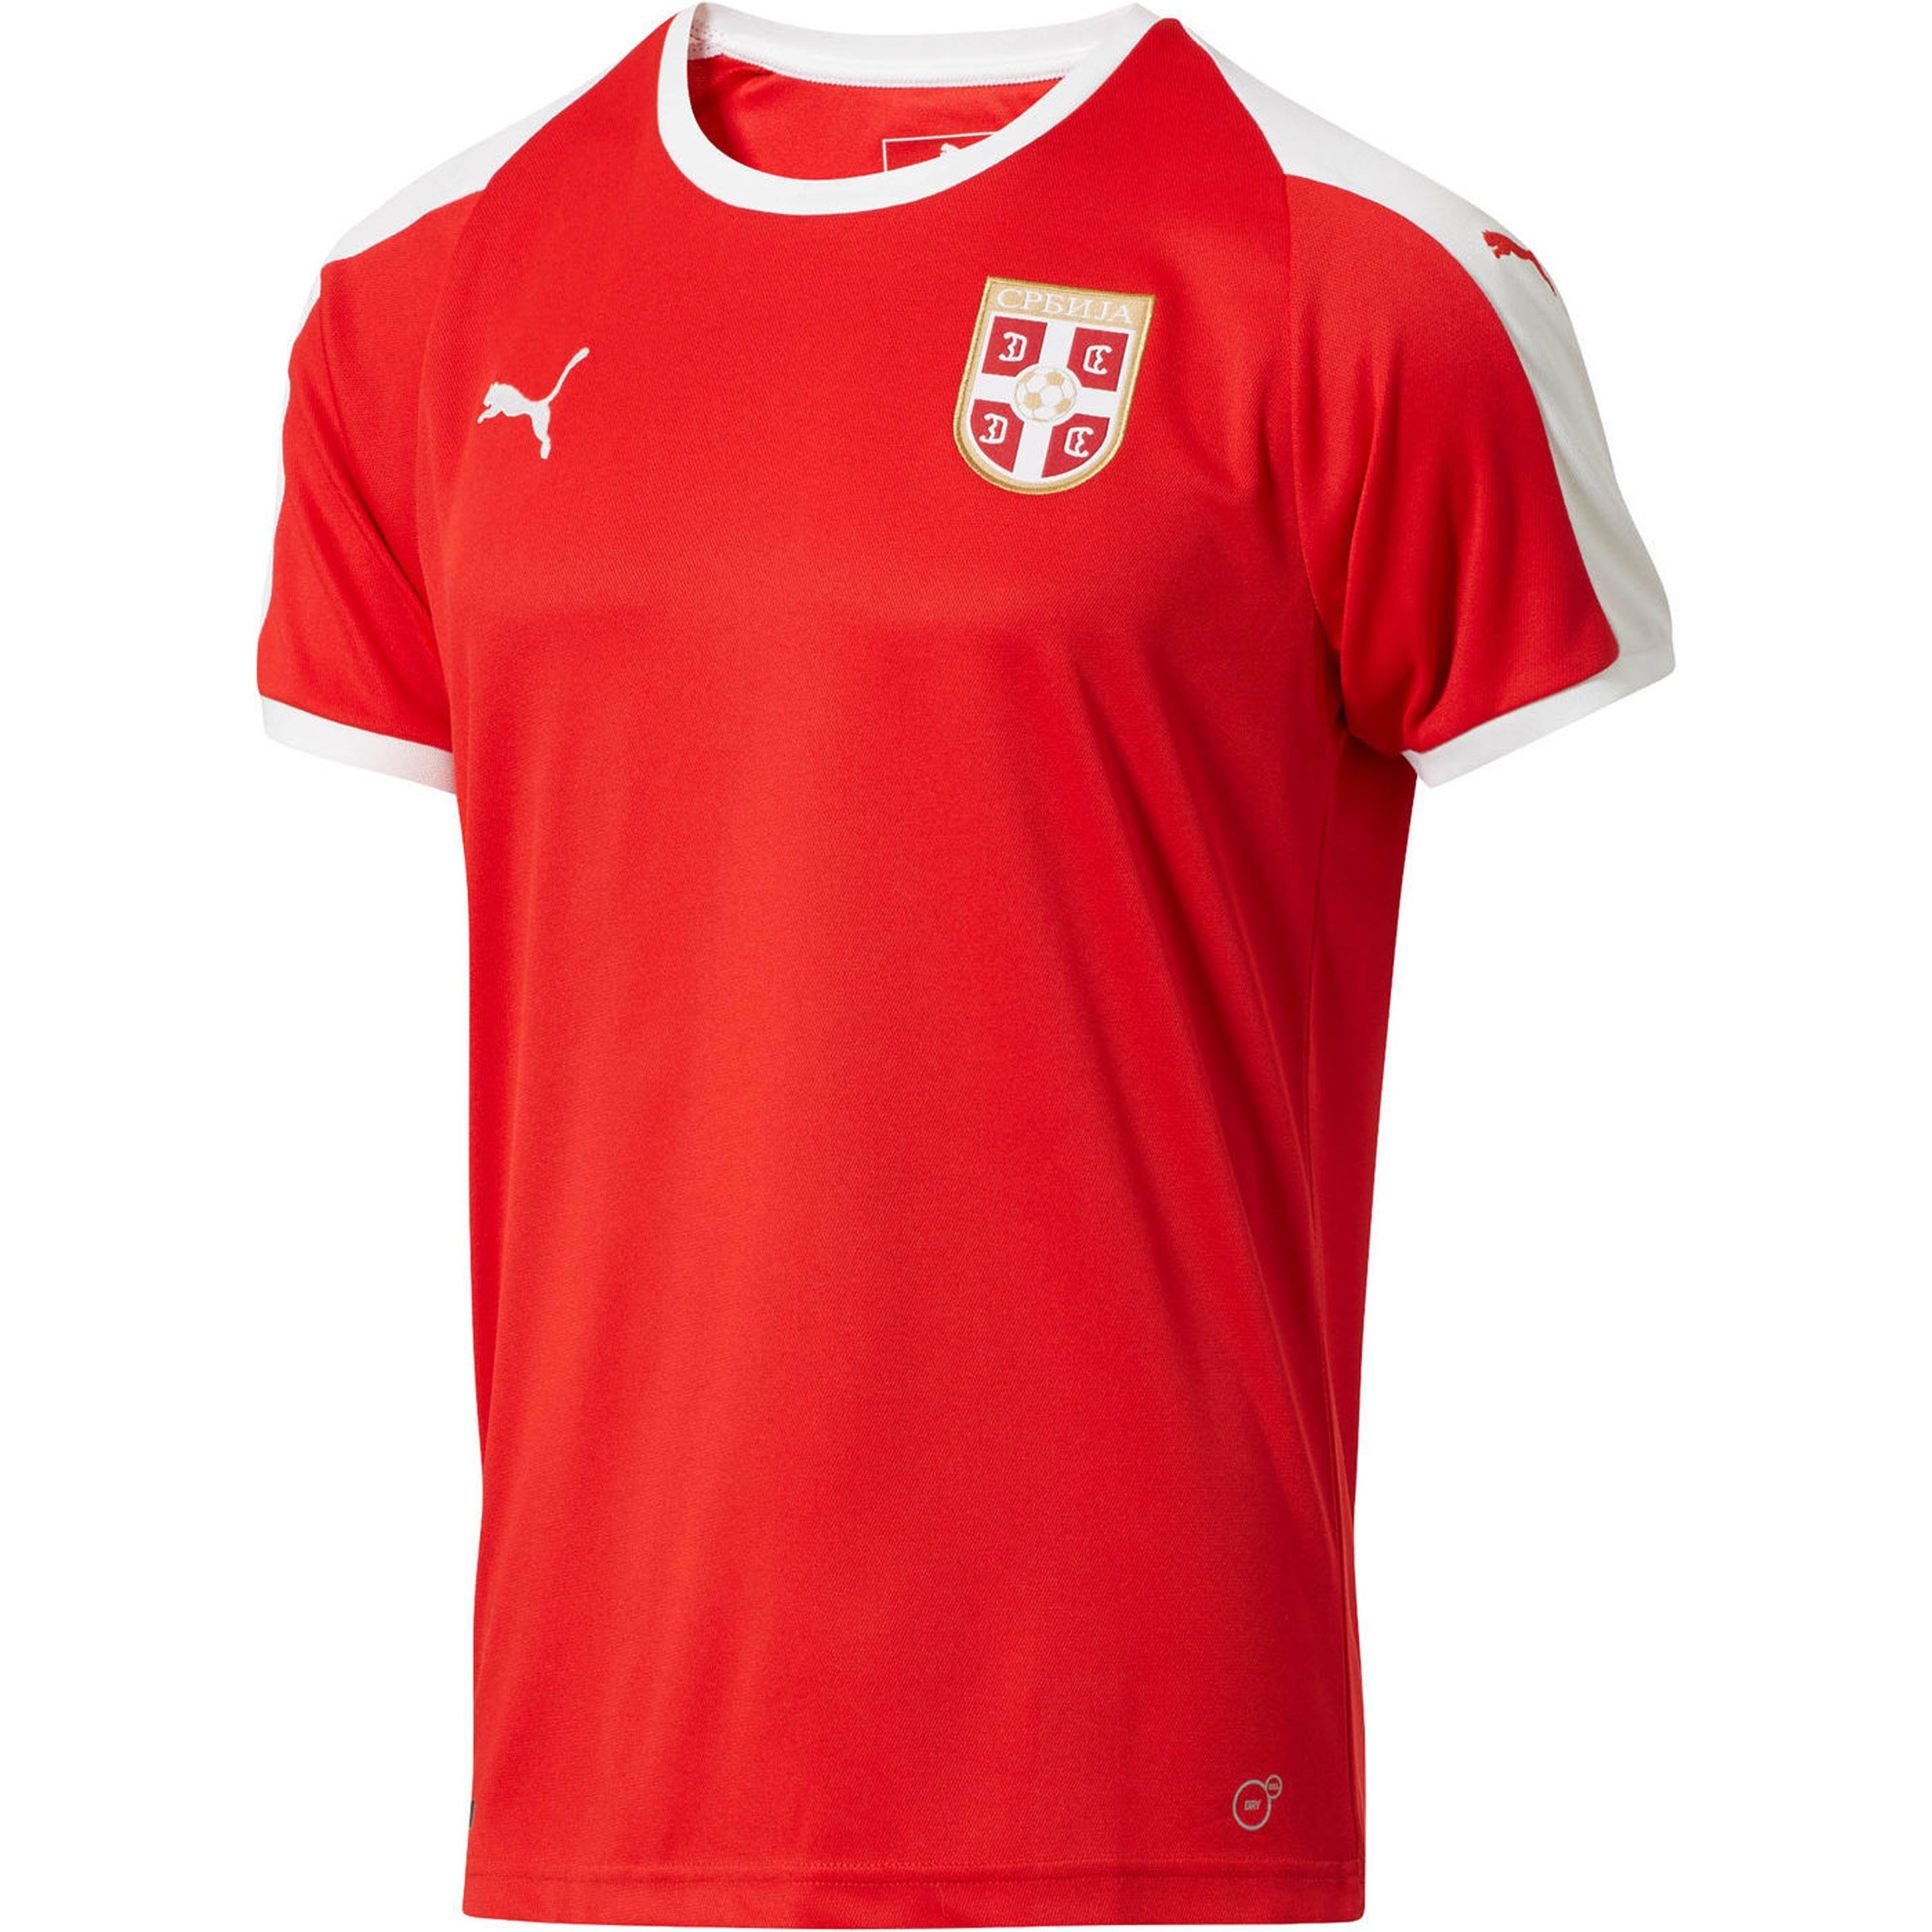 78dbc6111 ... red and white kit was released under the slogan